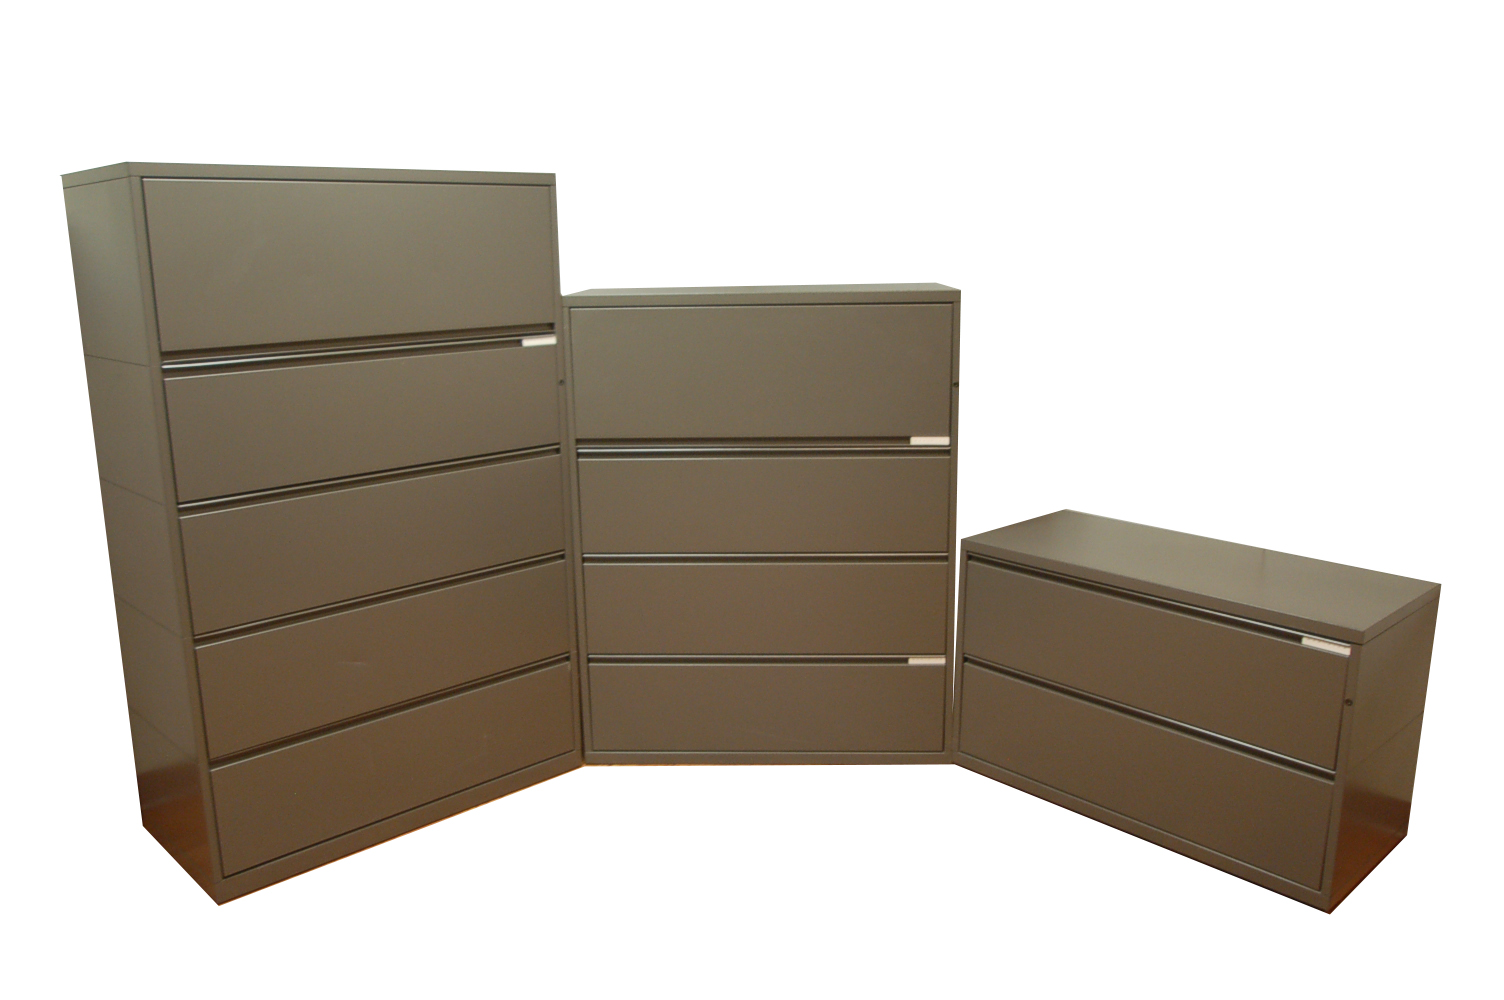 Three Lateral File Cabinets